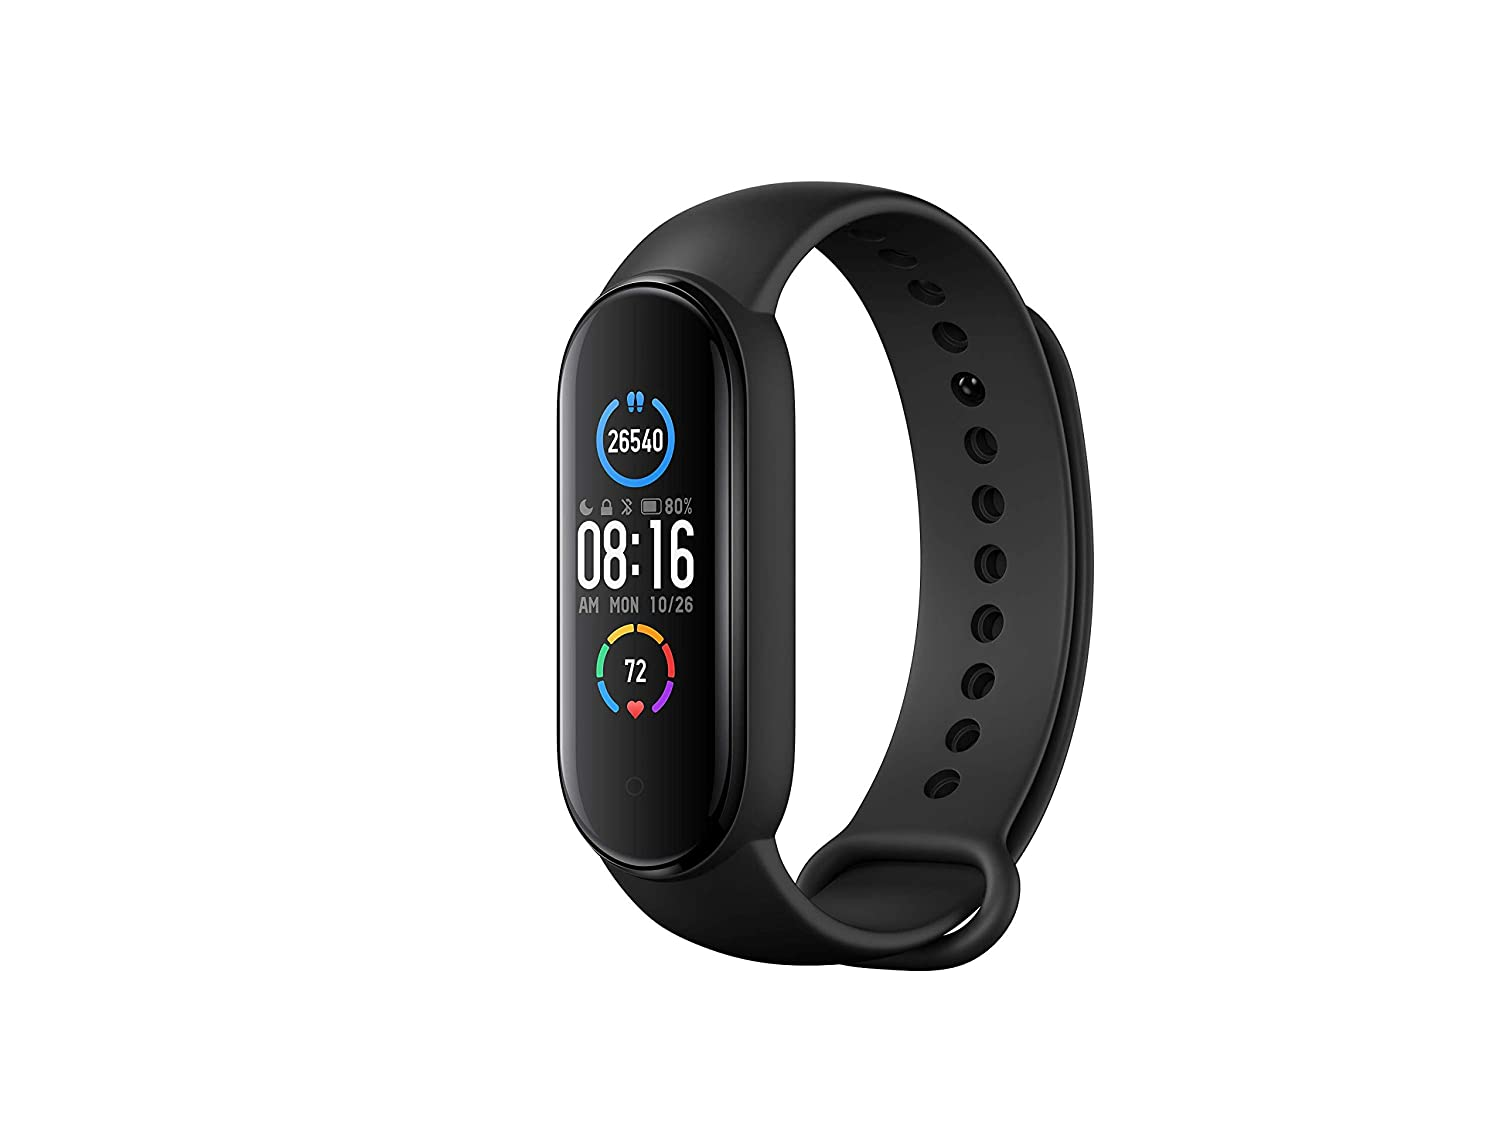 Mijia Mi band 5 Best fitness activity tracker band under 5000 in India